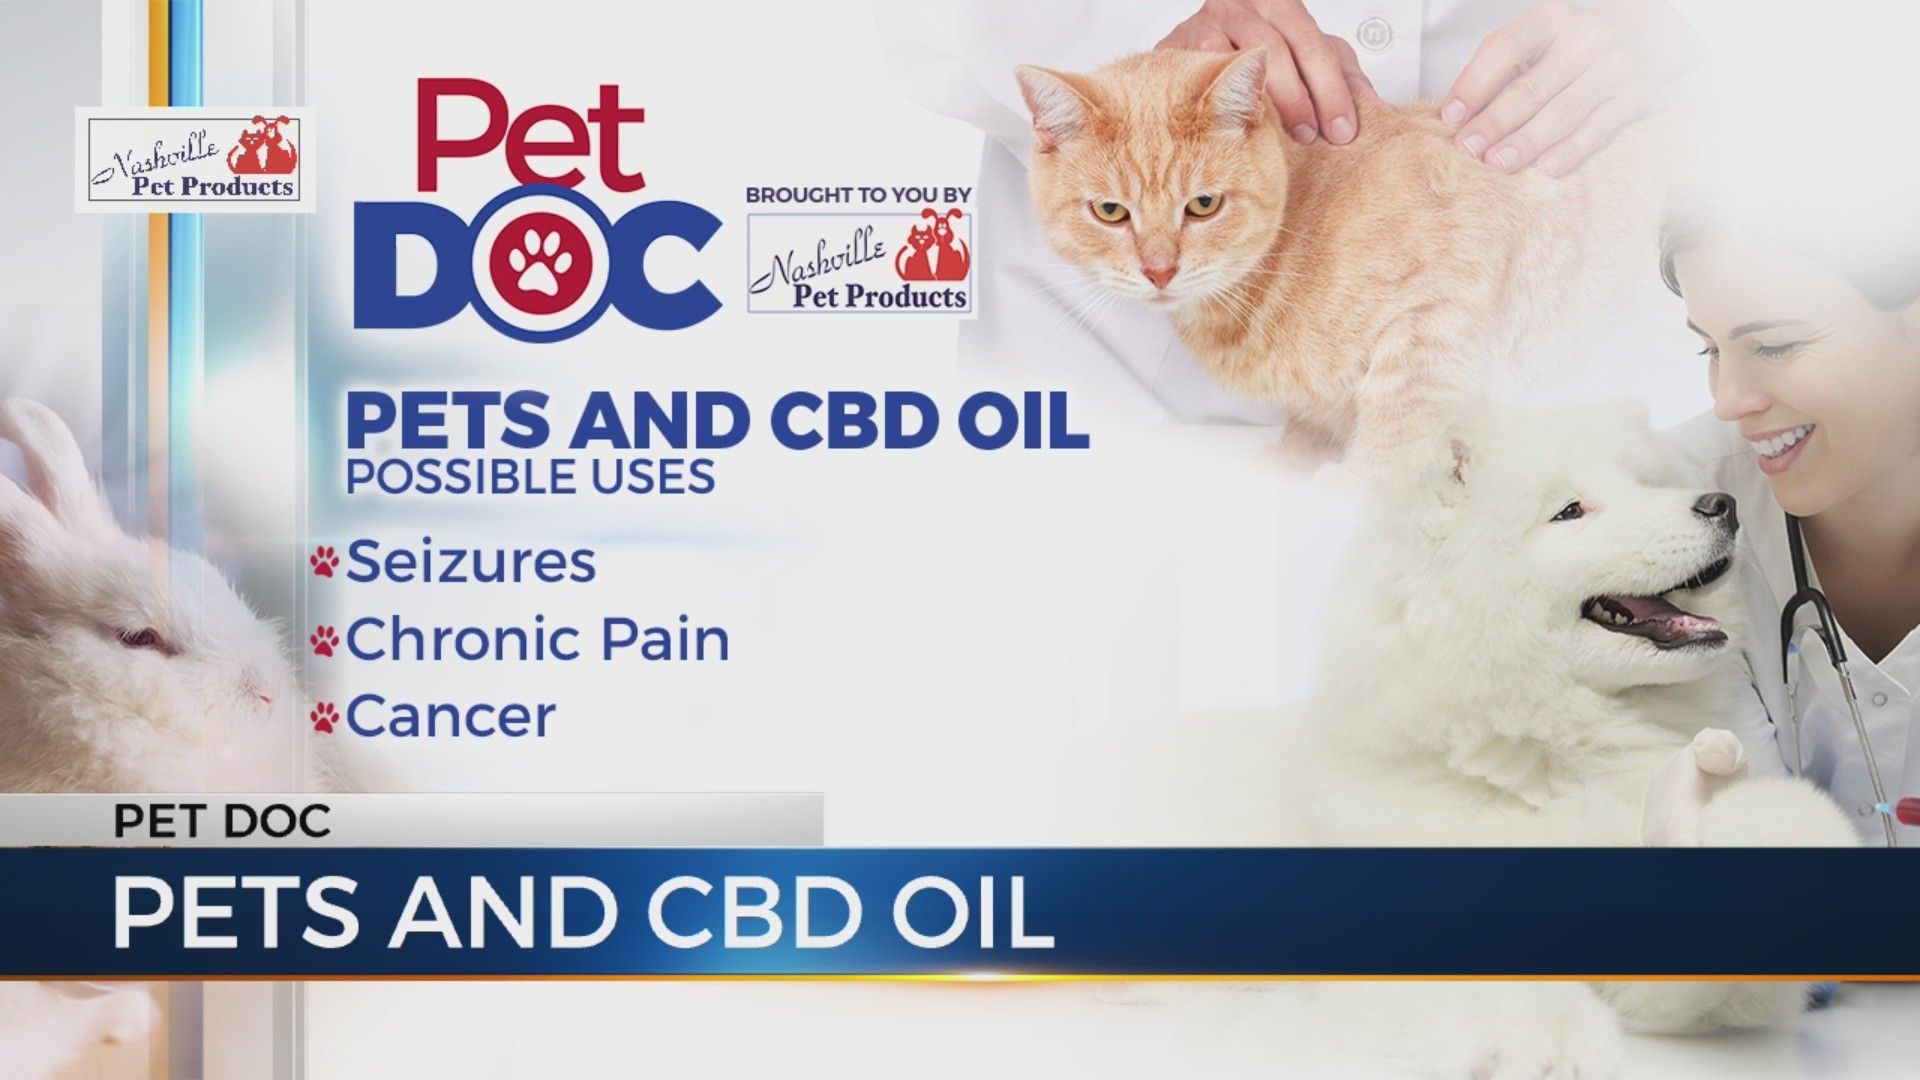 Pet Doc: Are CBD products safe for our pets?